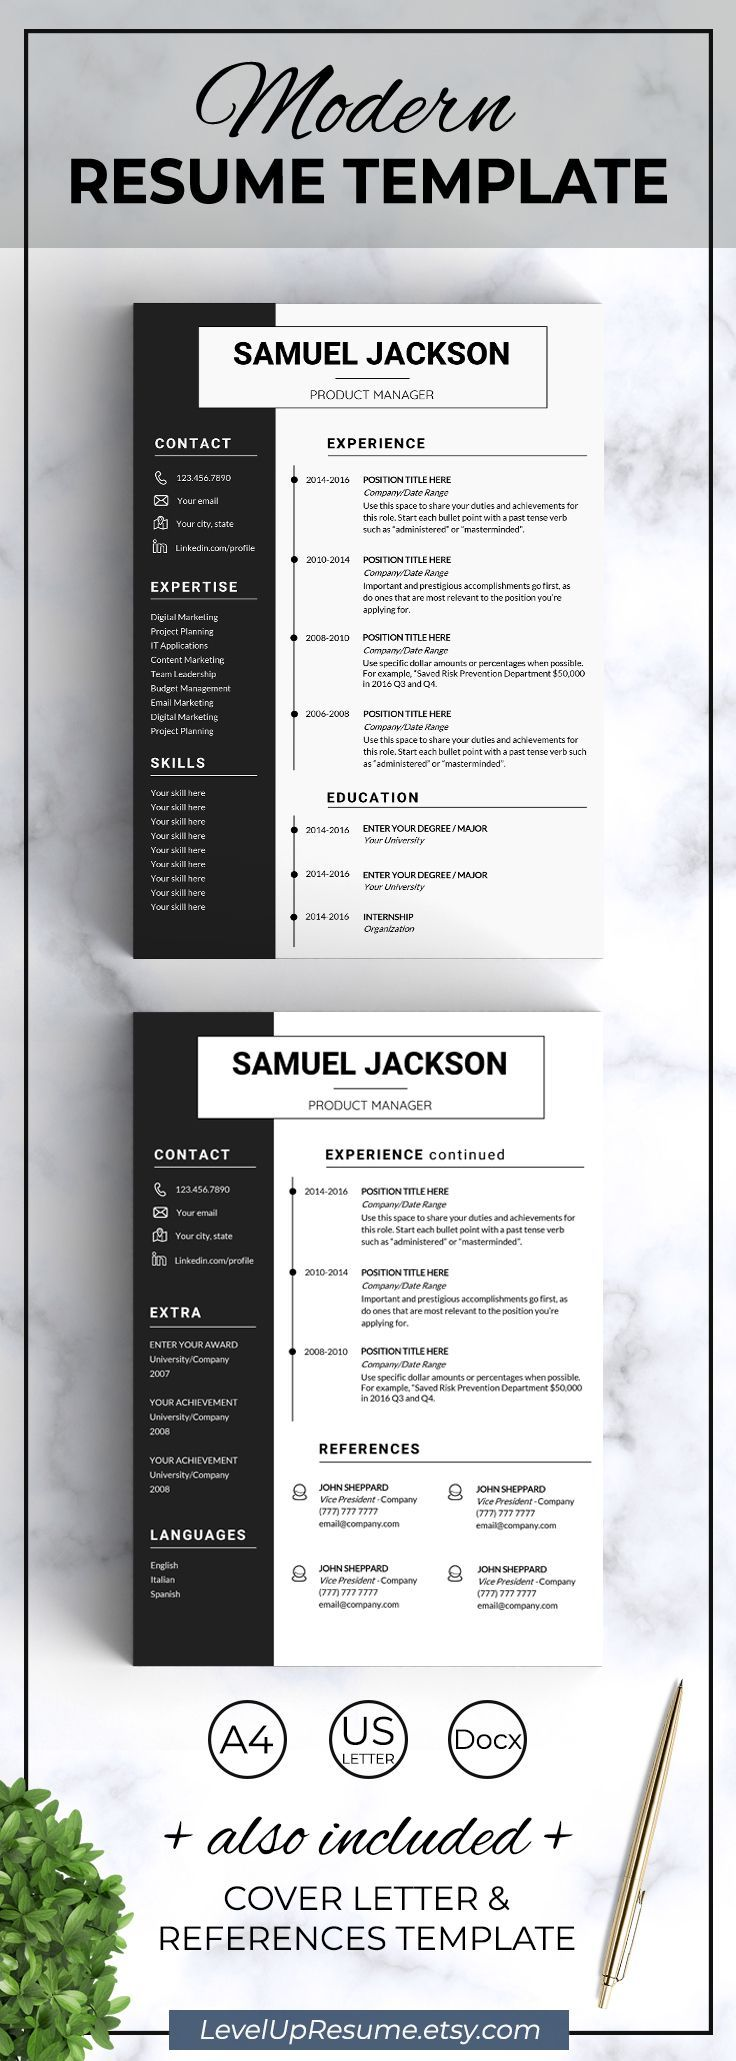 Clean And Simple Resume Template Professional Resume Design